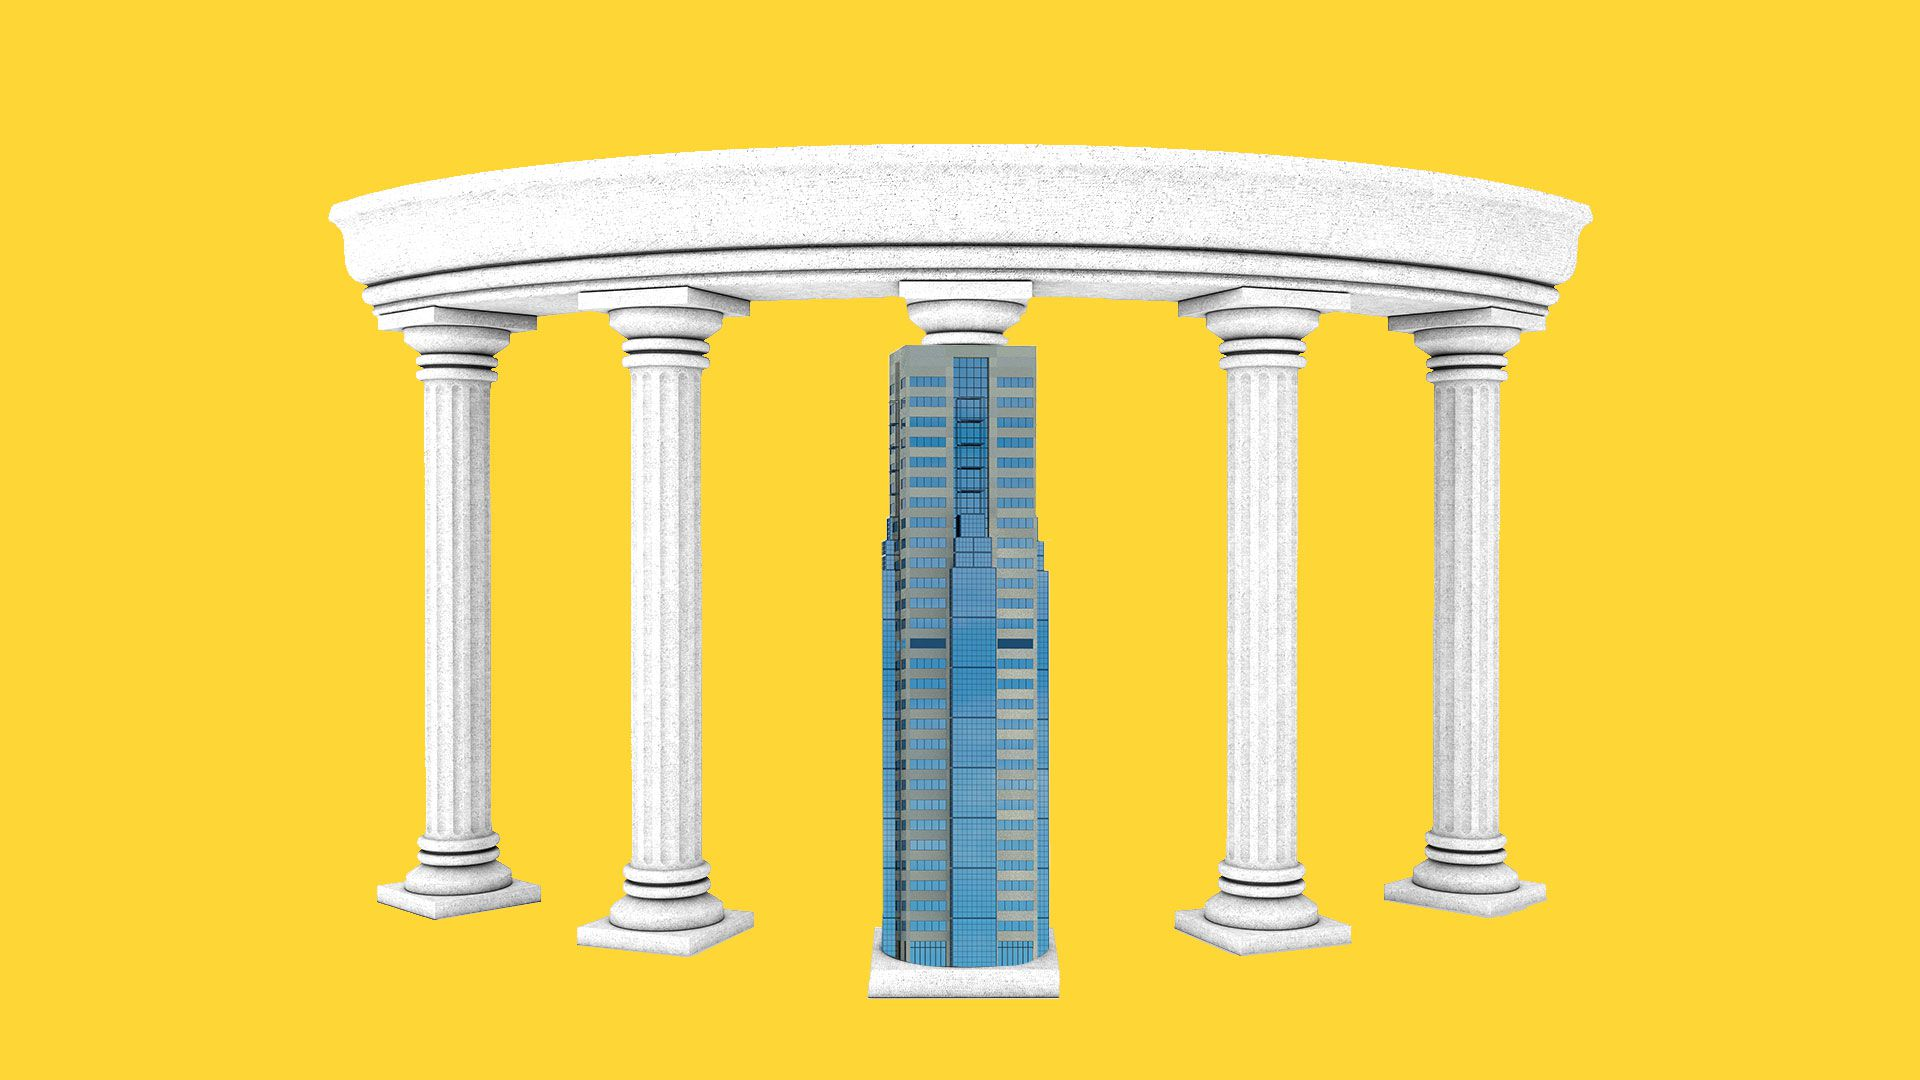 Illustration of a circle of columns with the center column replaced by a skyscraper